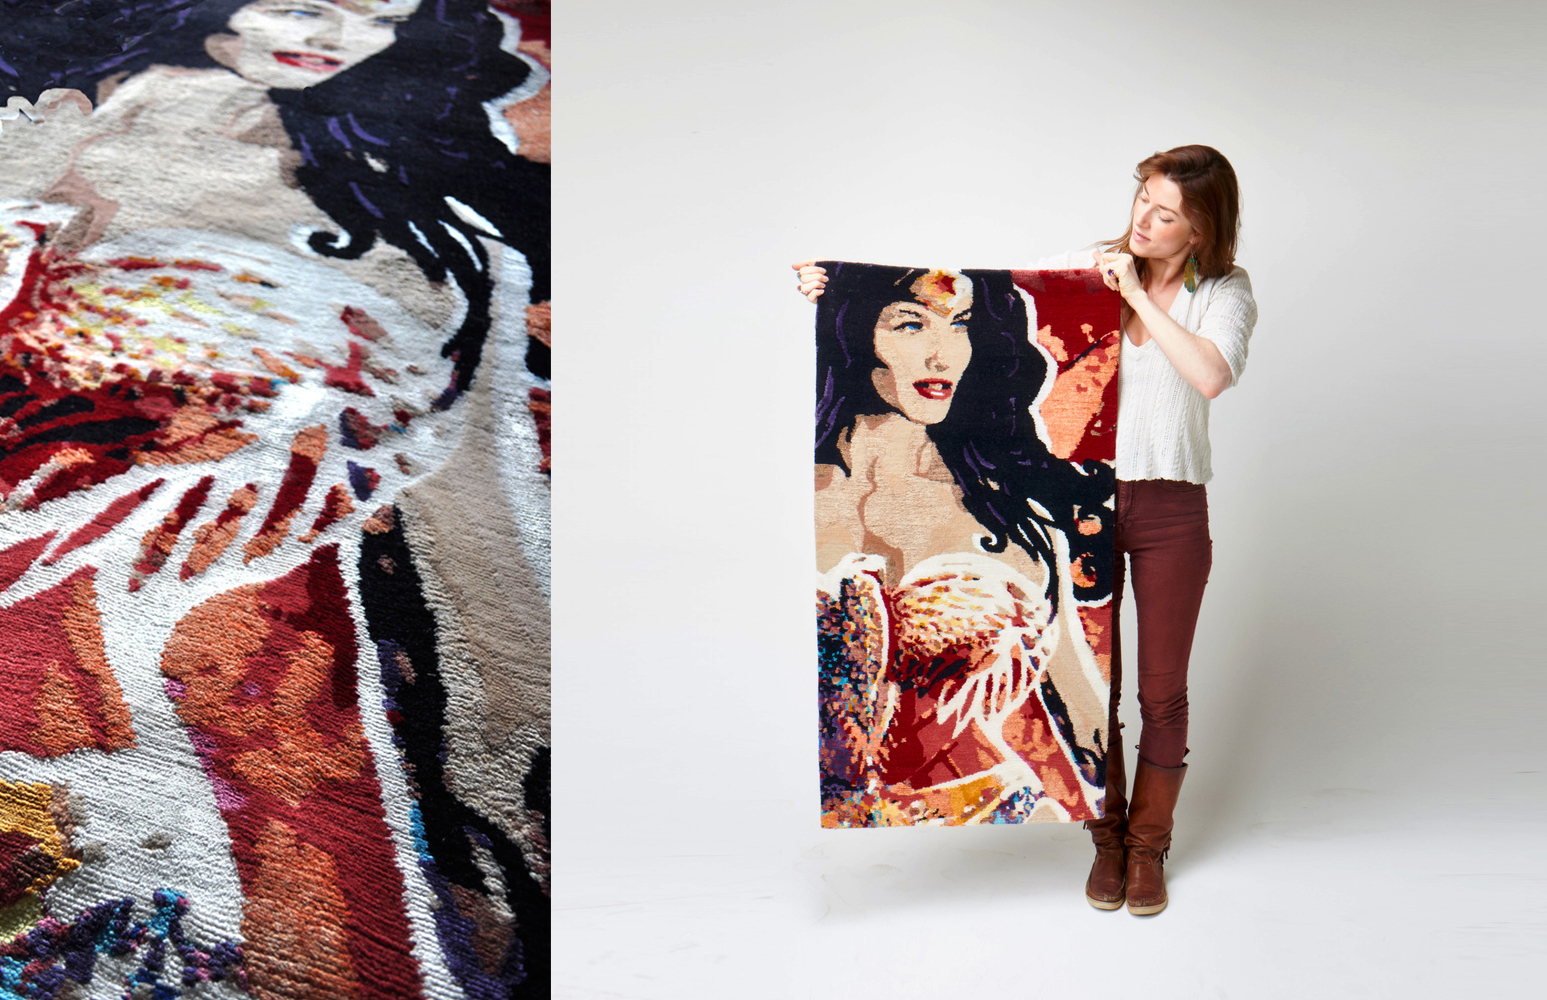 Wonder Woman  | This 2'x4' tapestry is hand-knotted in wool, bamboo and hemp; her eyes are detailed in Swarovski crystals | Handmade in Nepal | 2013